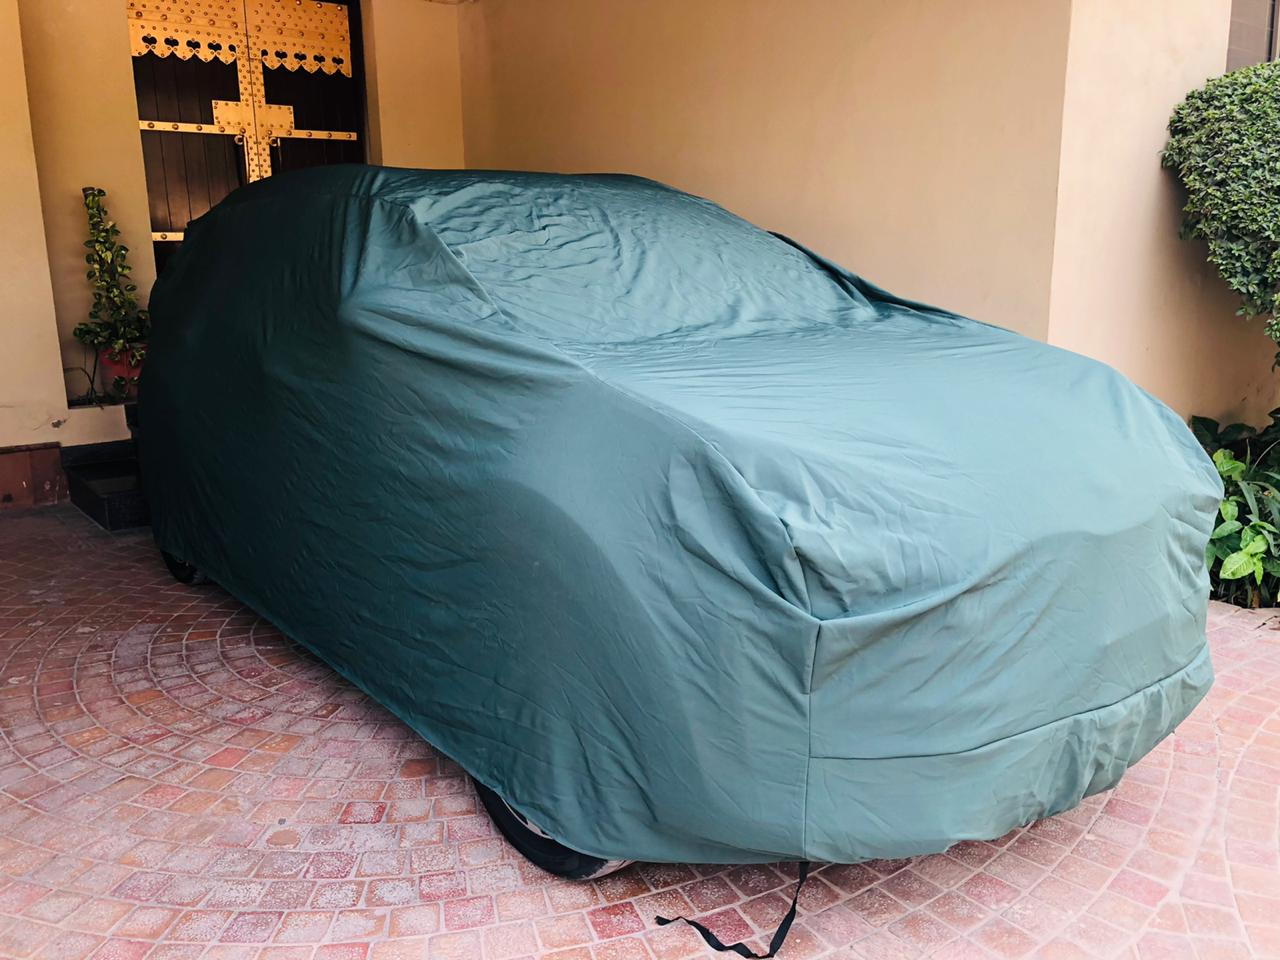 Toyota Prado Microfiber Car Top Cover